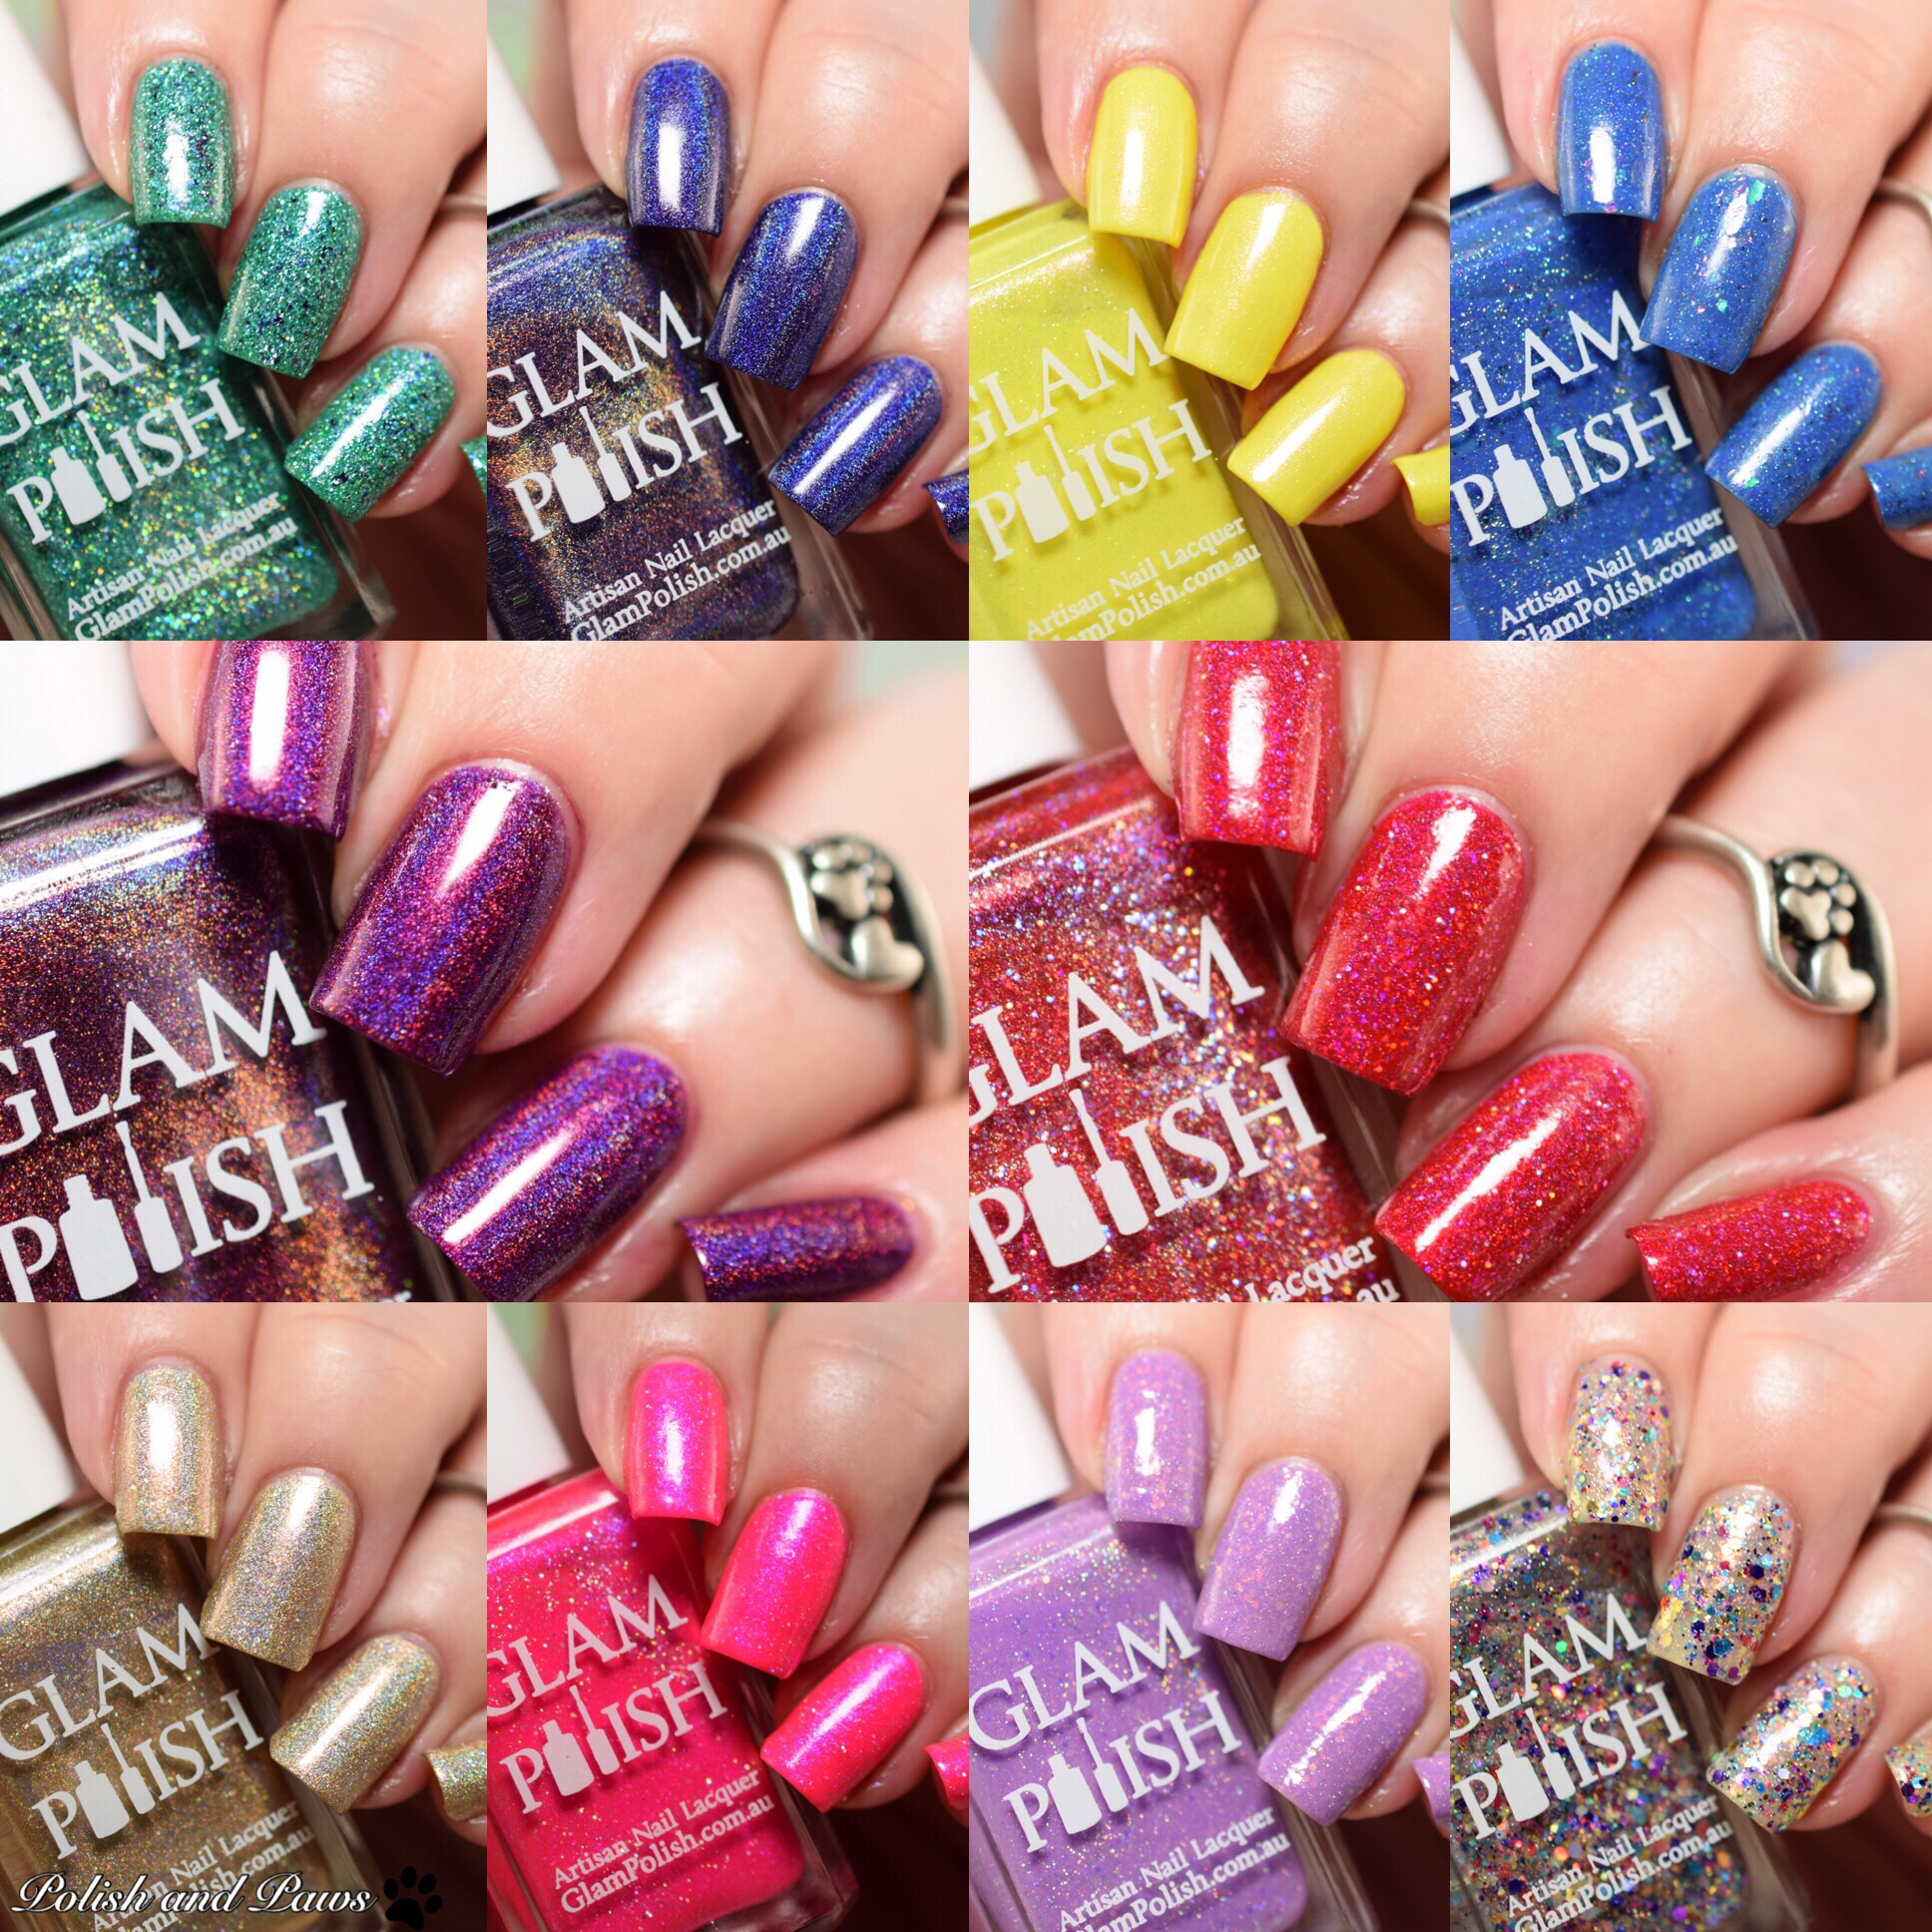 Glam Polish Technicolor World Collection